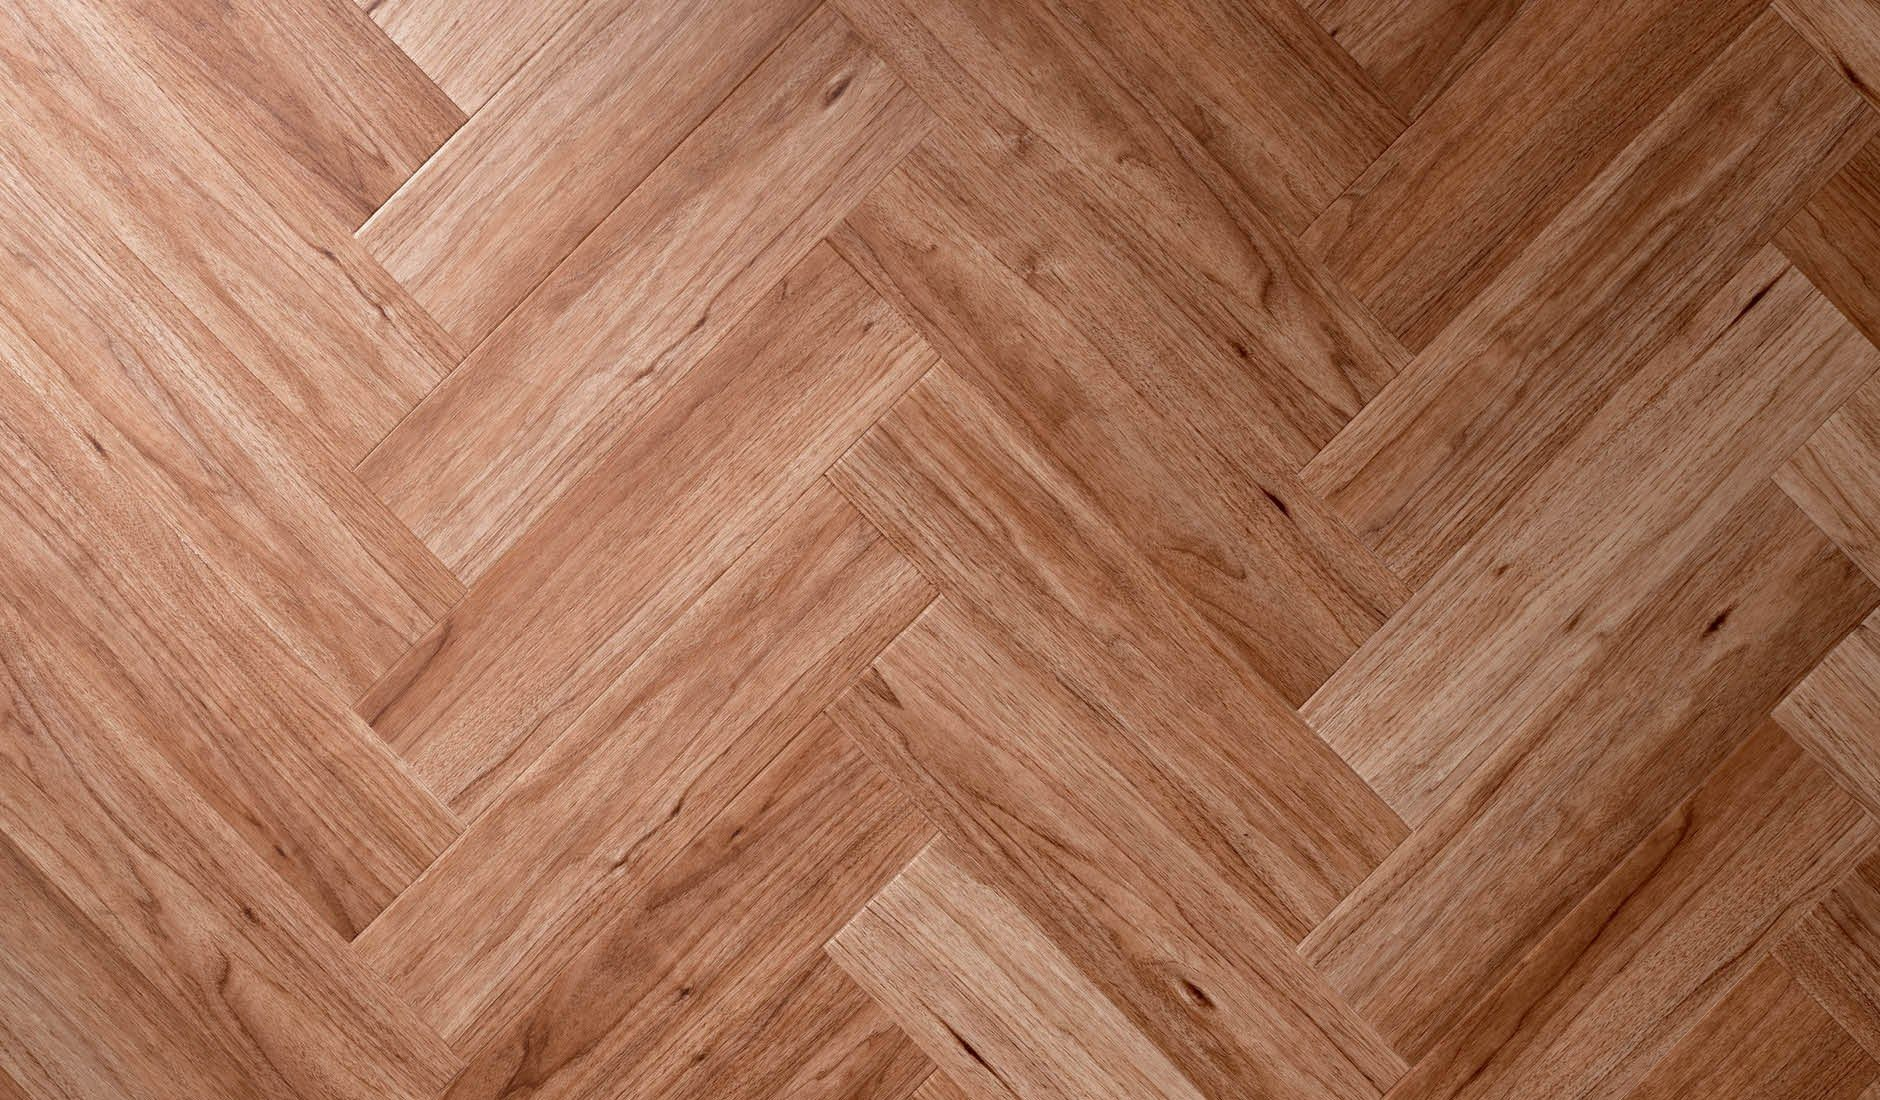 Laying Pattern Herringbone Texture And Patterns Wood